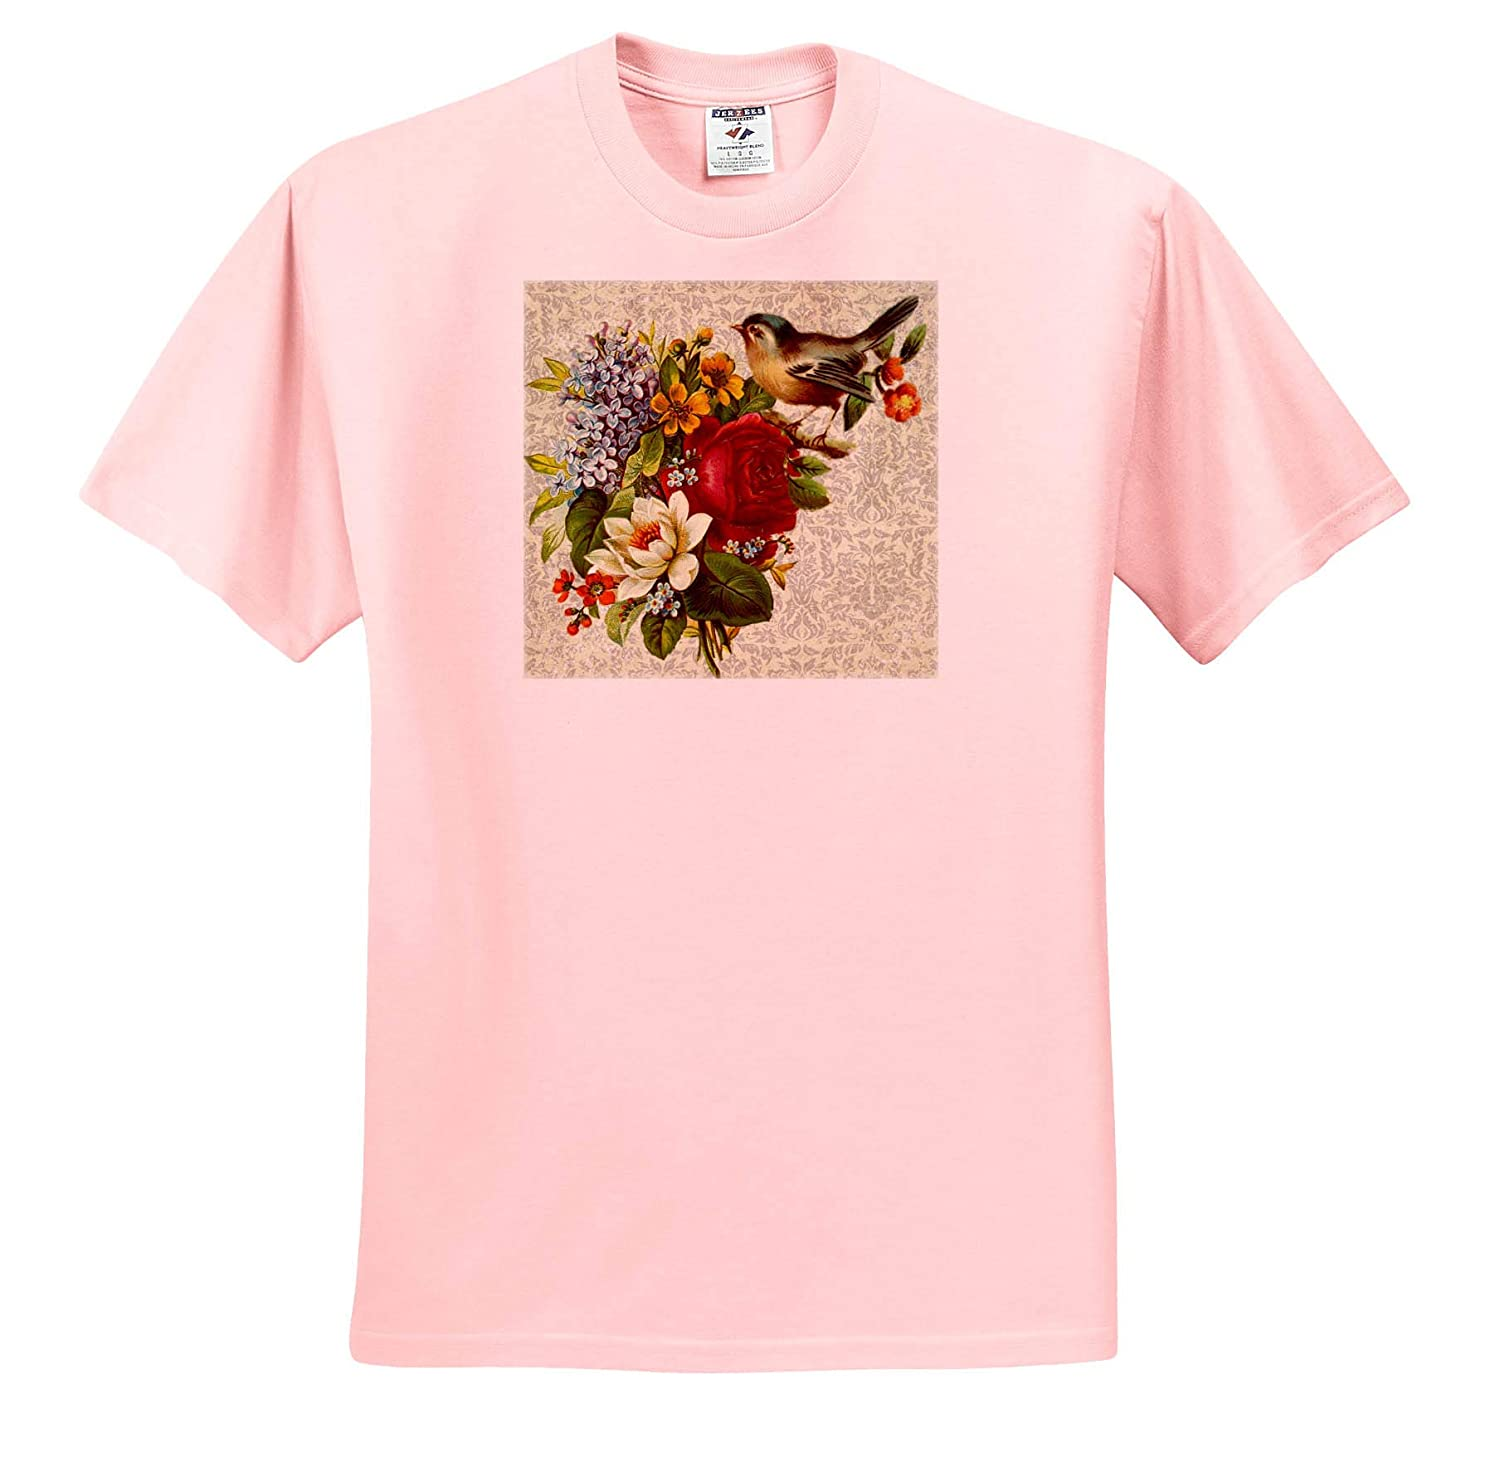 3dRose Lens Art by Florene Image of Vintage Lilac Flowers Red Rose and Bird On Damask Flower Standouts T-Shirts